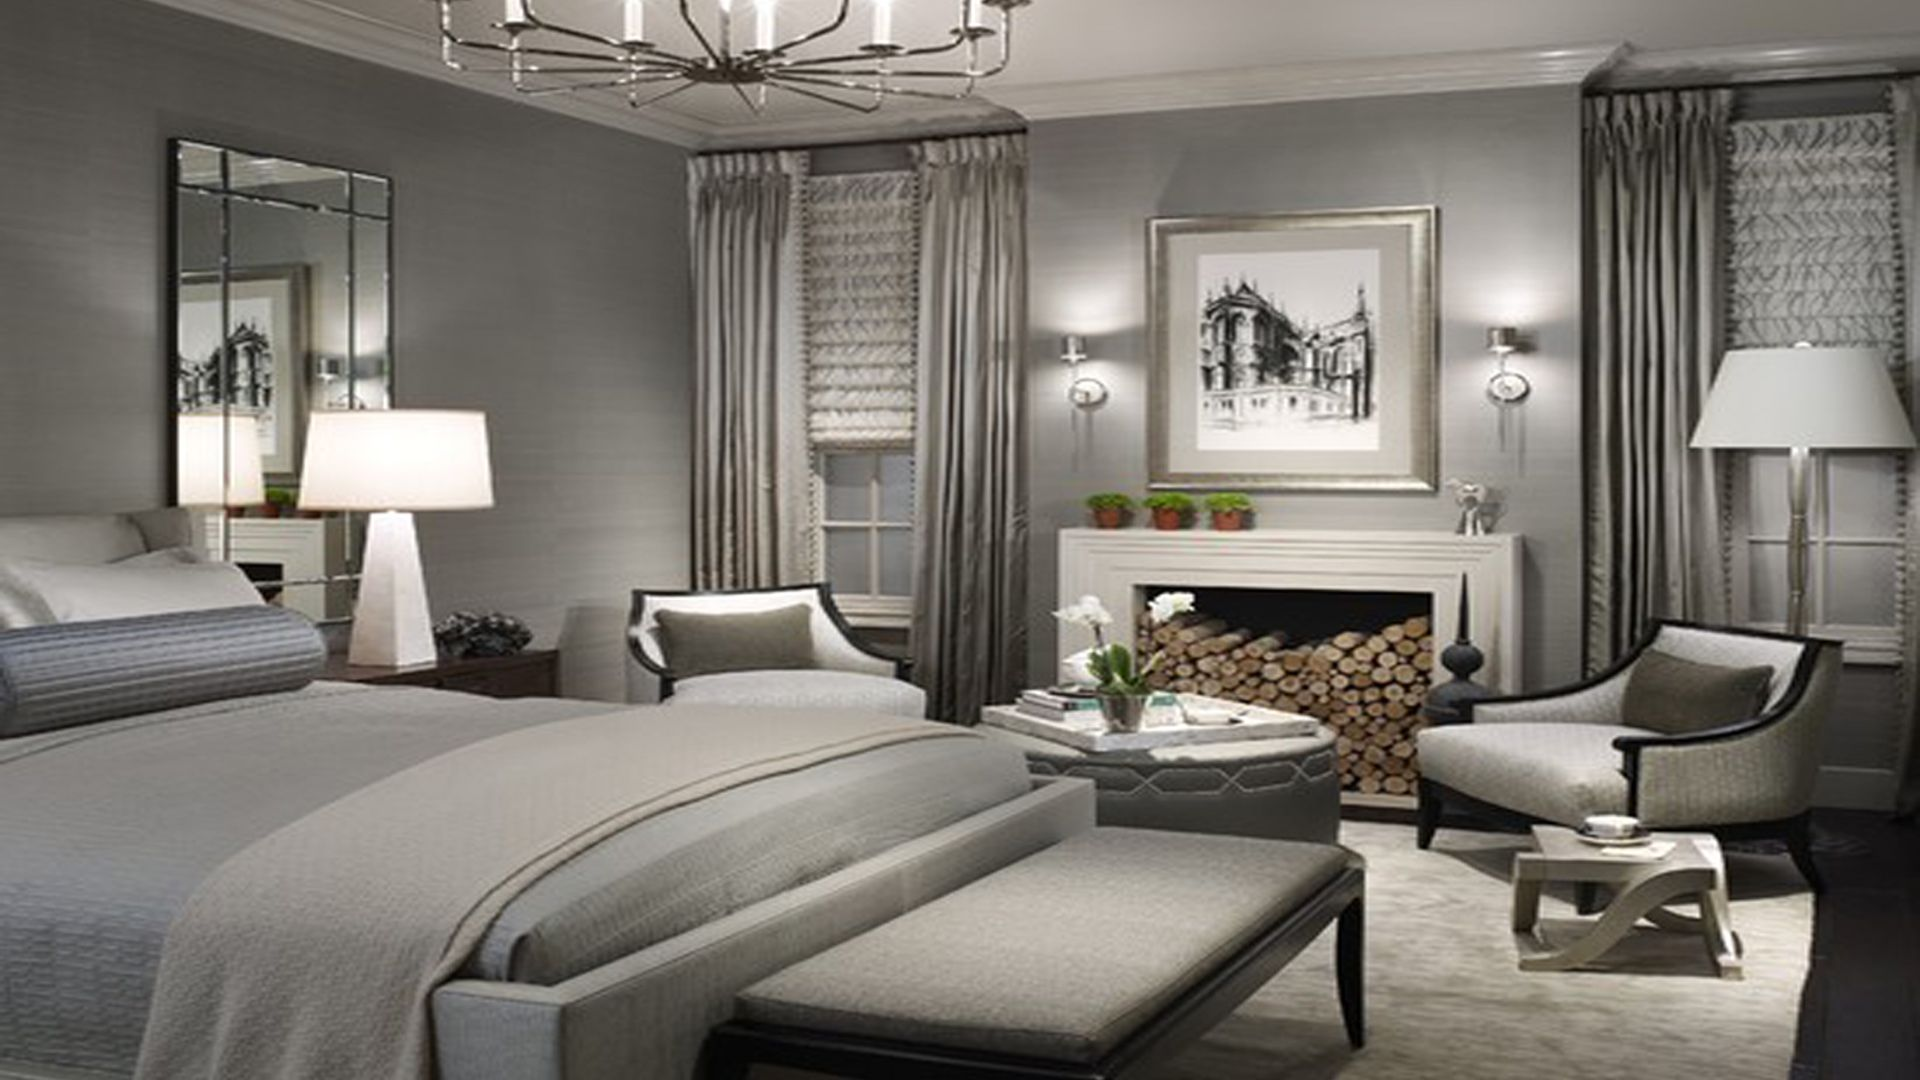 Window well decoration ideas  breathtaking dark gray velvet benches with gray floral blinds for